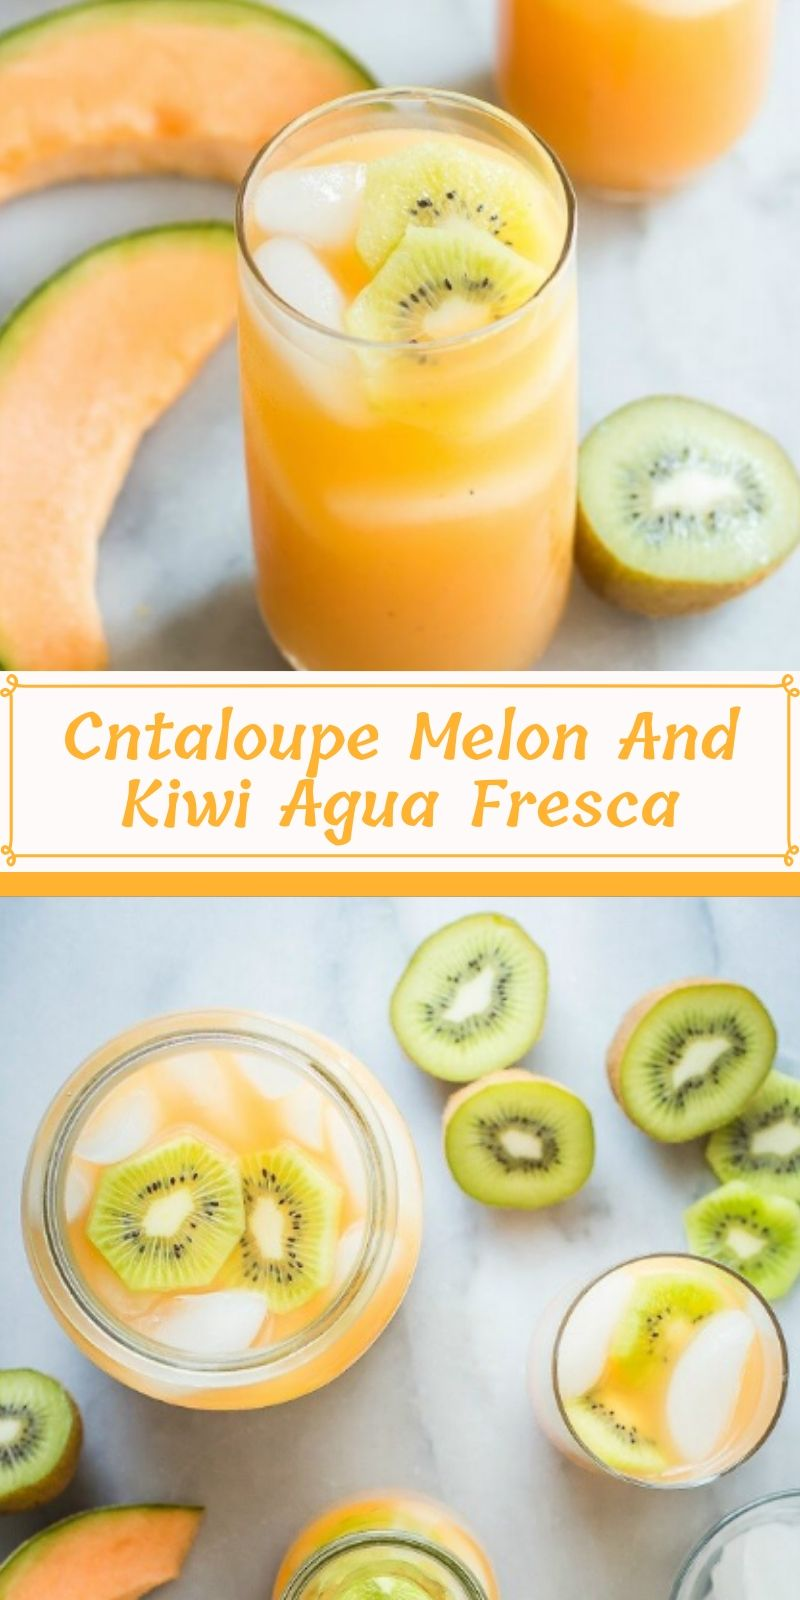 https://foodnessgracious.com/cantaloupe-melon-and-kiwi-agua-fresca/